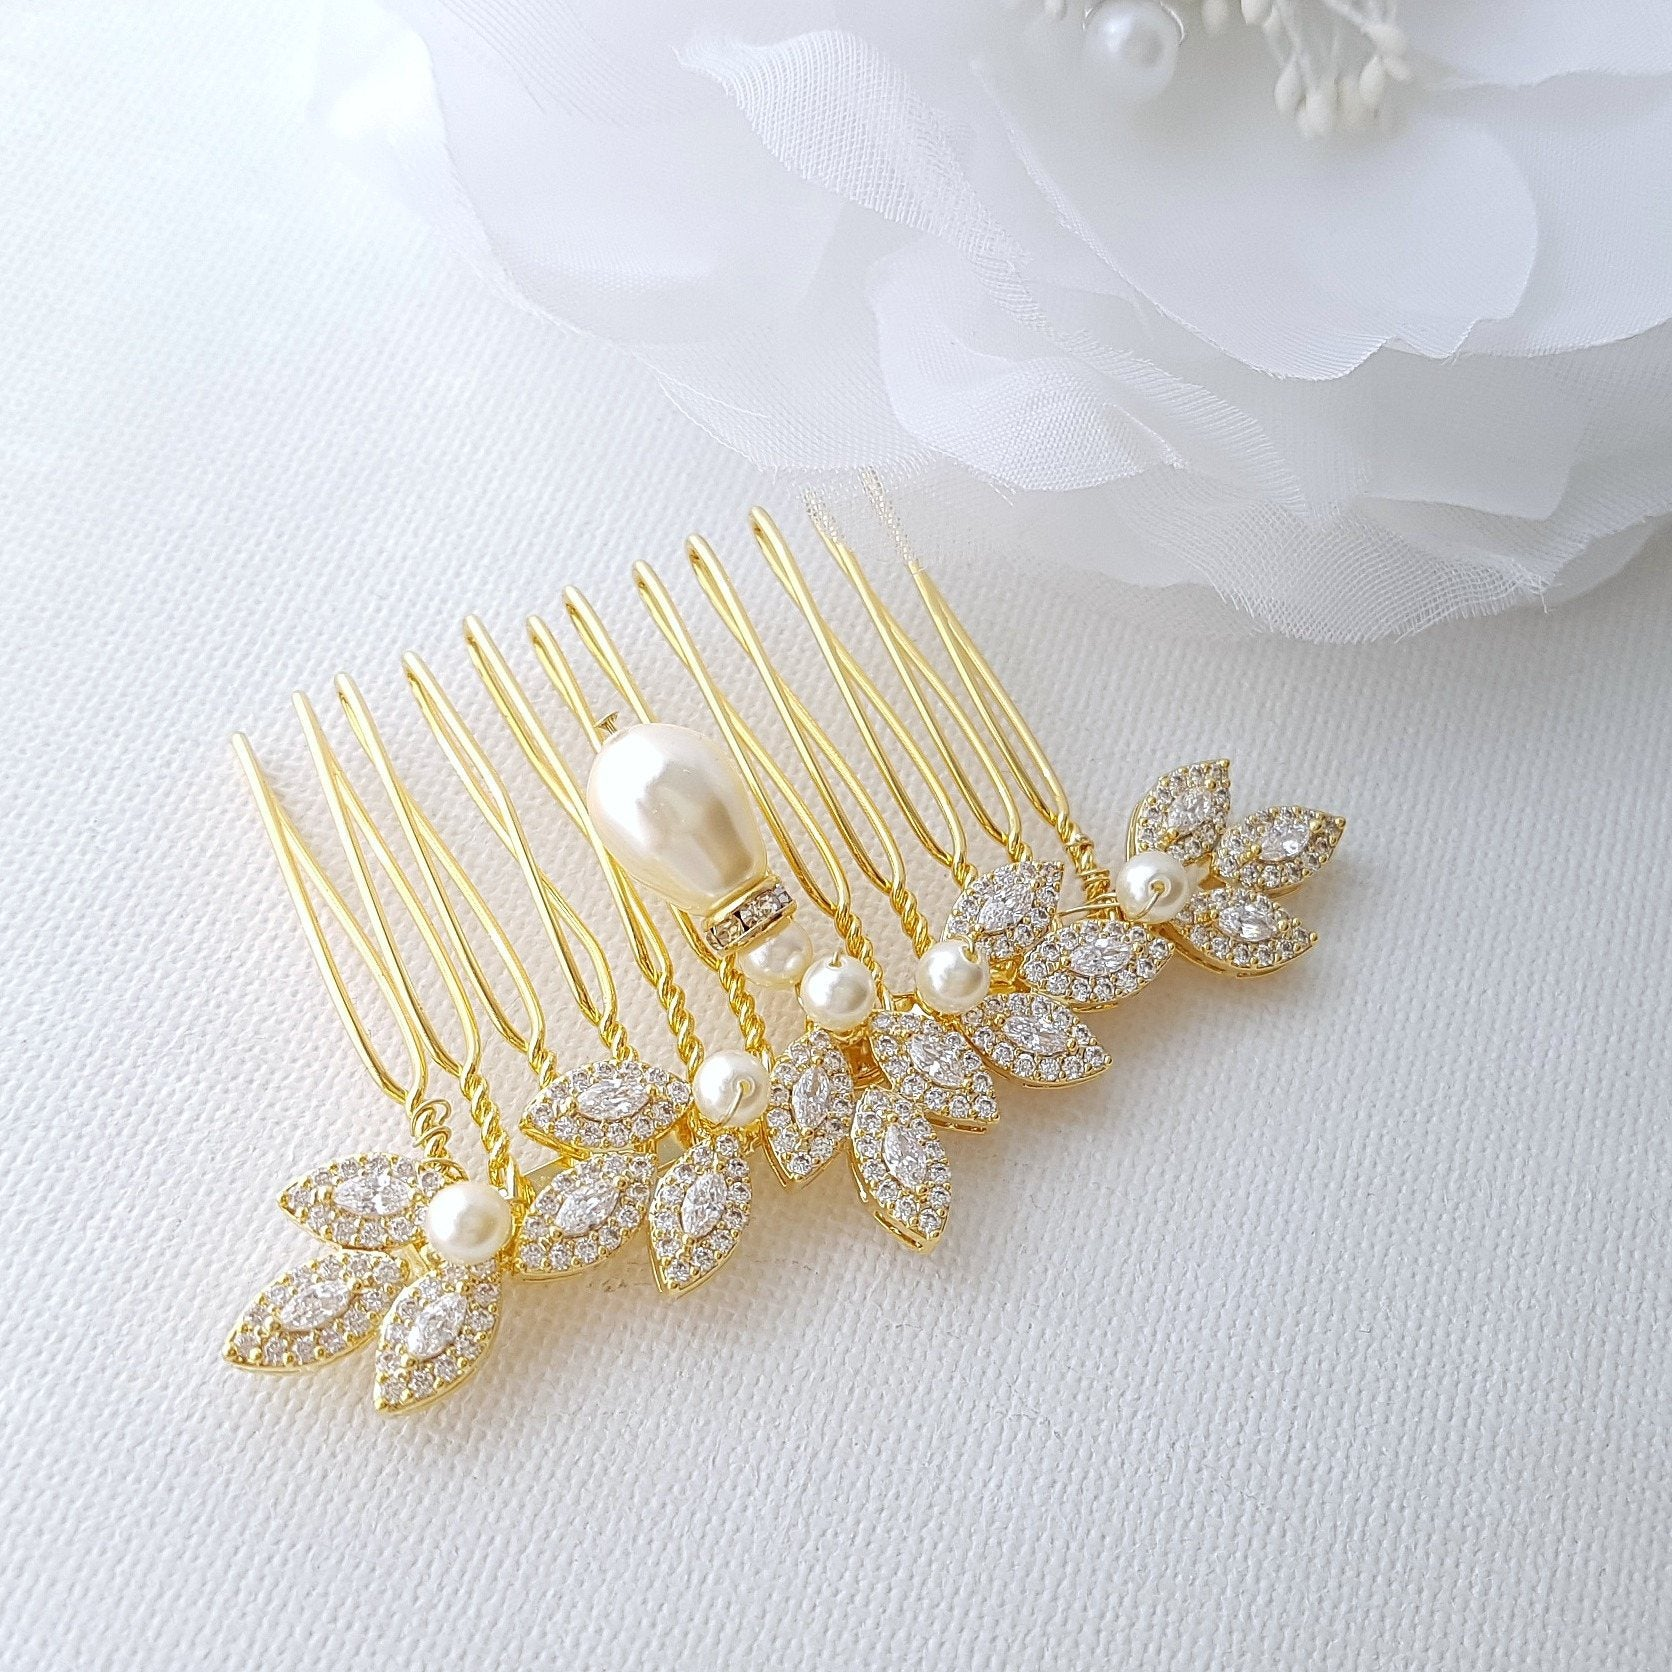 Gold Bridal Comb, Pearl Hair Comb, Rose Gold Wedding Hair Comb, Leaf Hairpiece, Crystal Hair Comb, Bridal Accessories, Abby - PoetryDesigns